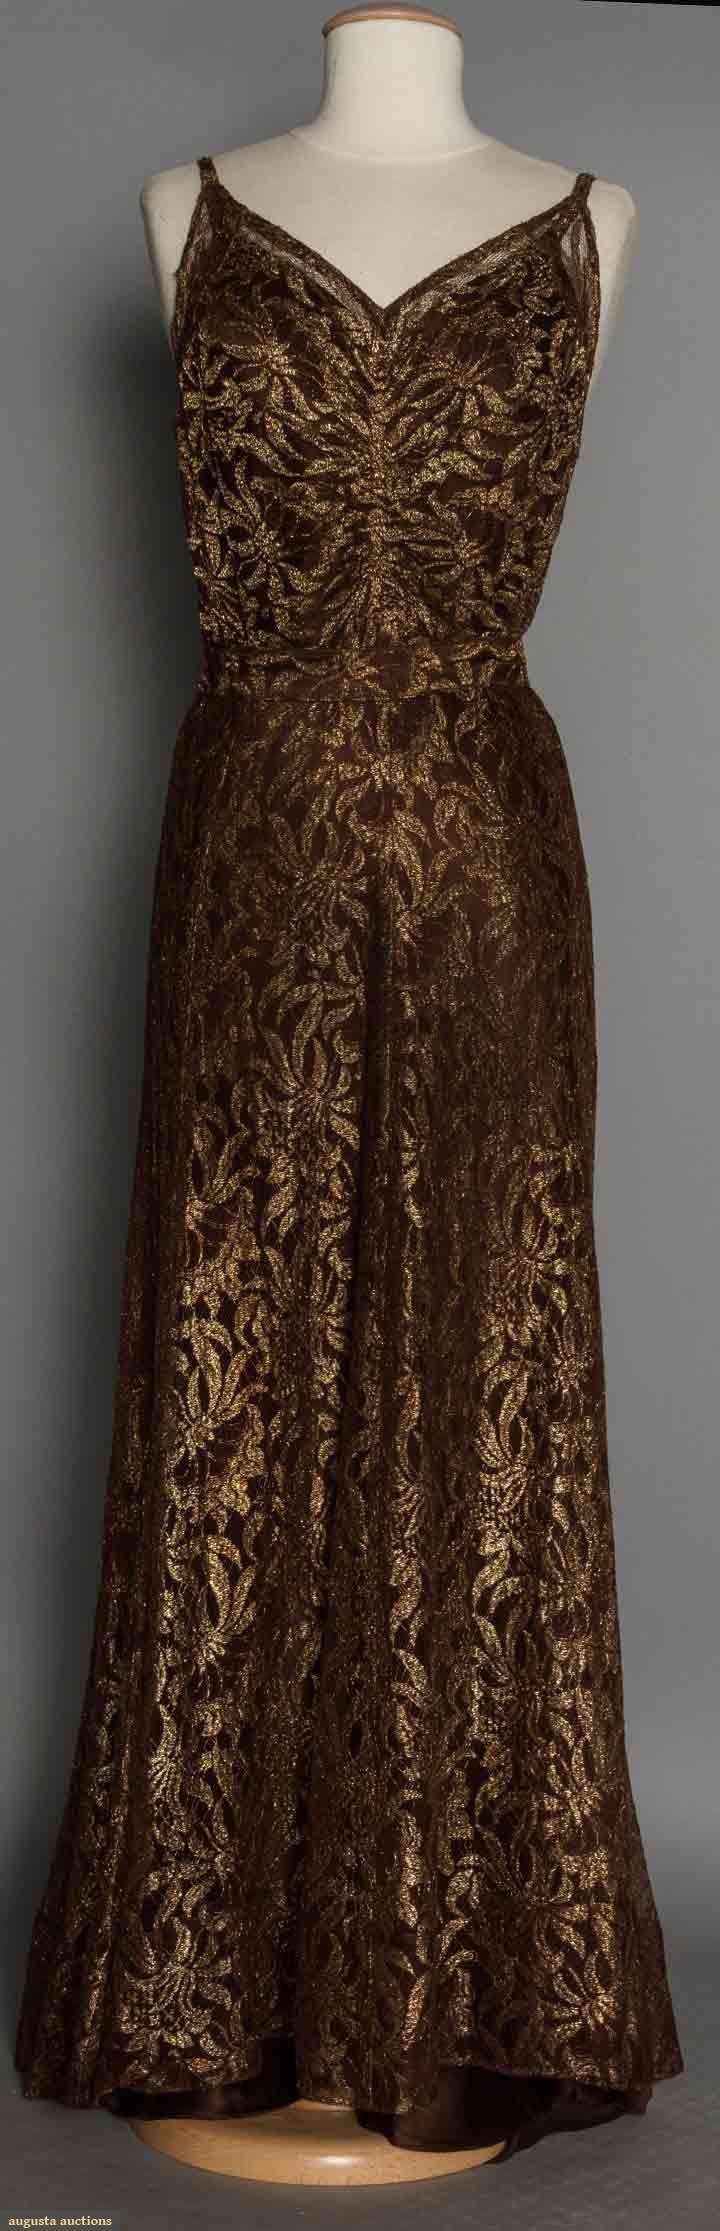 Best 25+ Gold lace dresses ideas on Pinterest | Gold spring ...